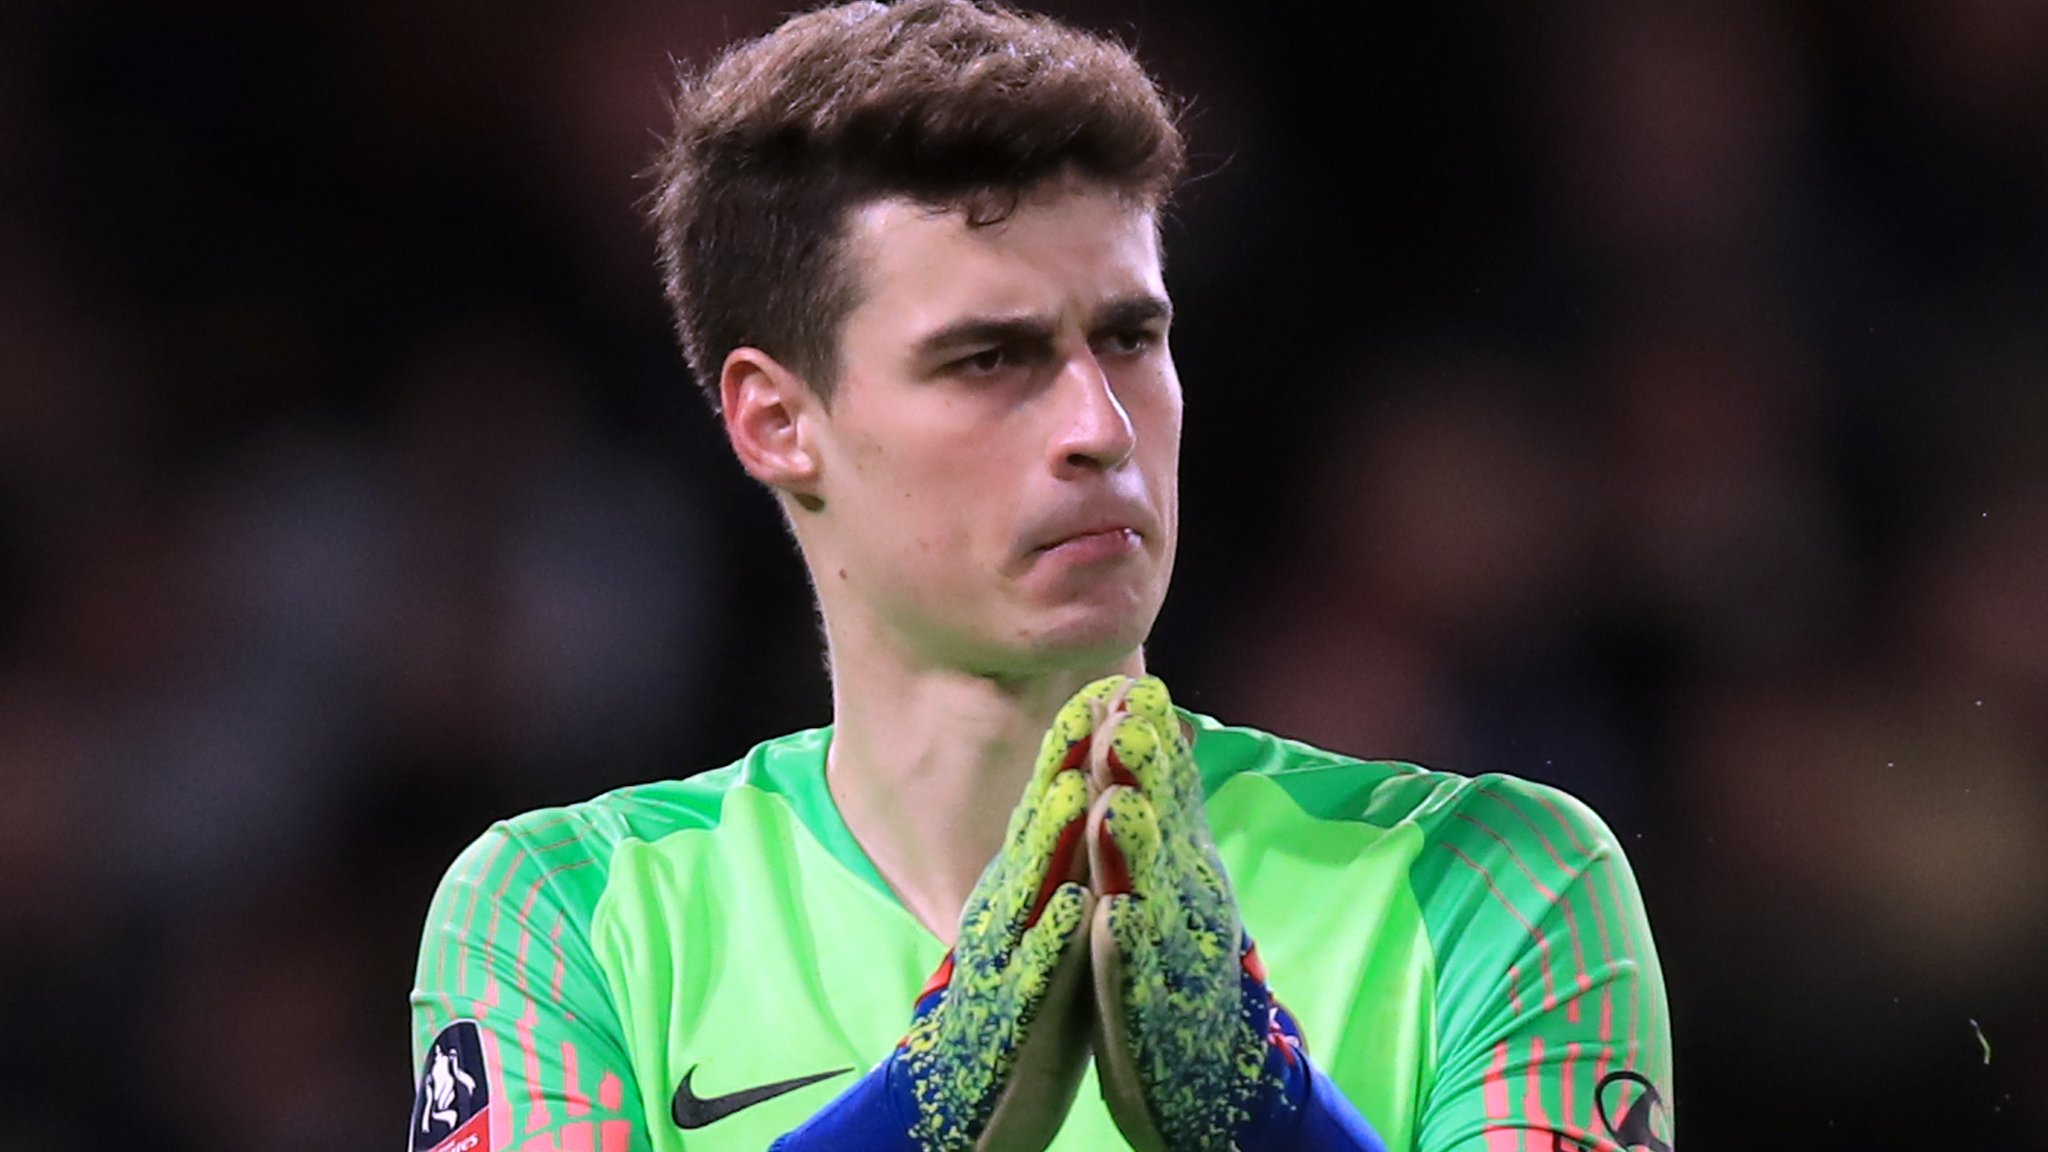 Chelsea v Malmo: Goalkeeper Kepa Arrizabalaga to miss game through injury